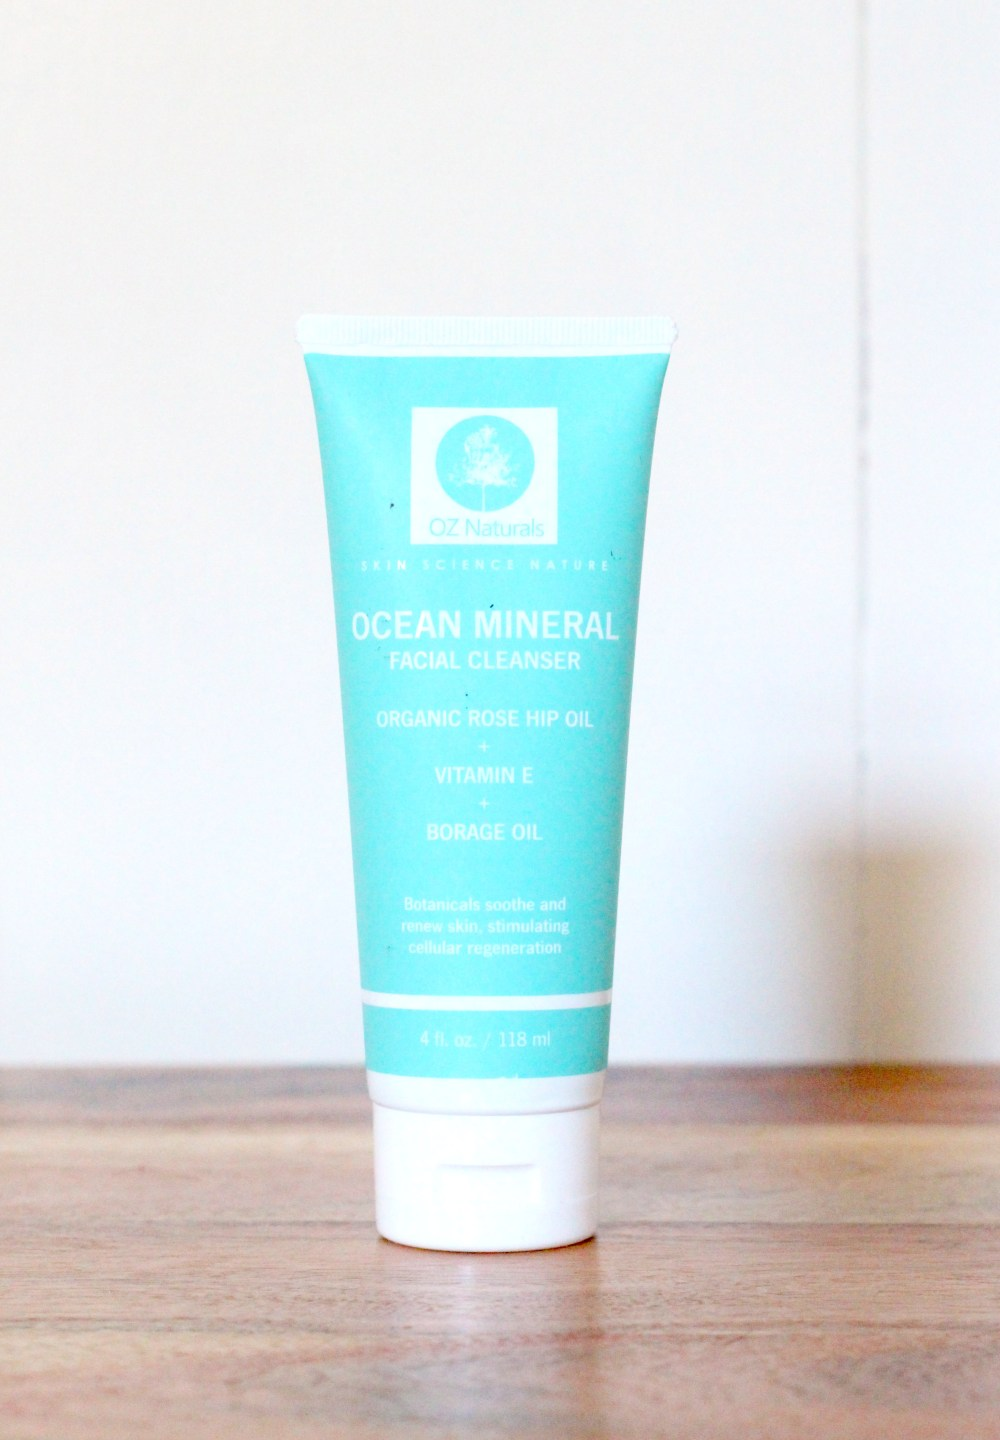 Oz Natural Ocean Mineral Facial Cleanser